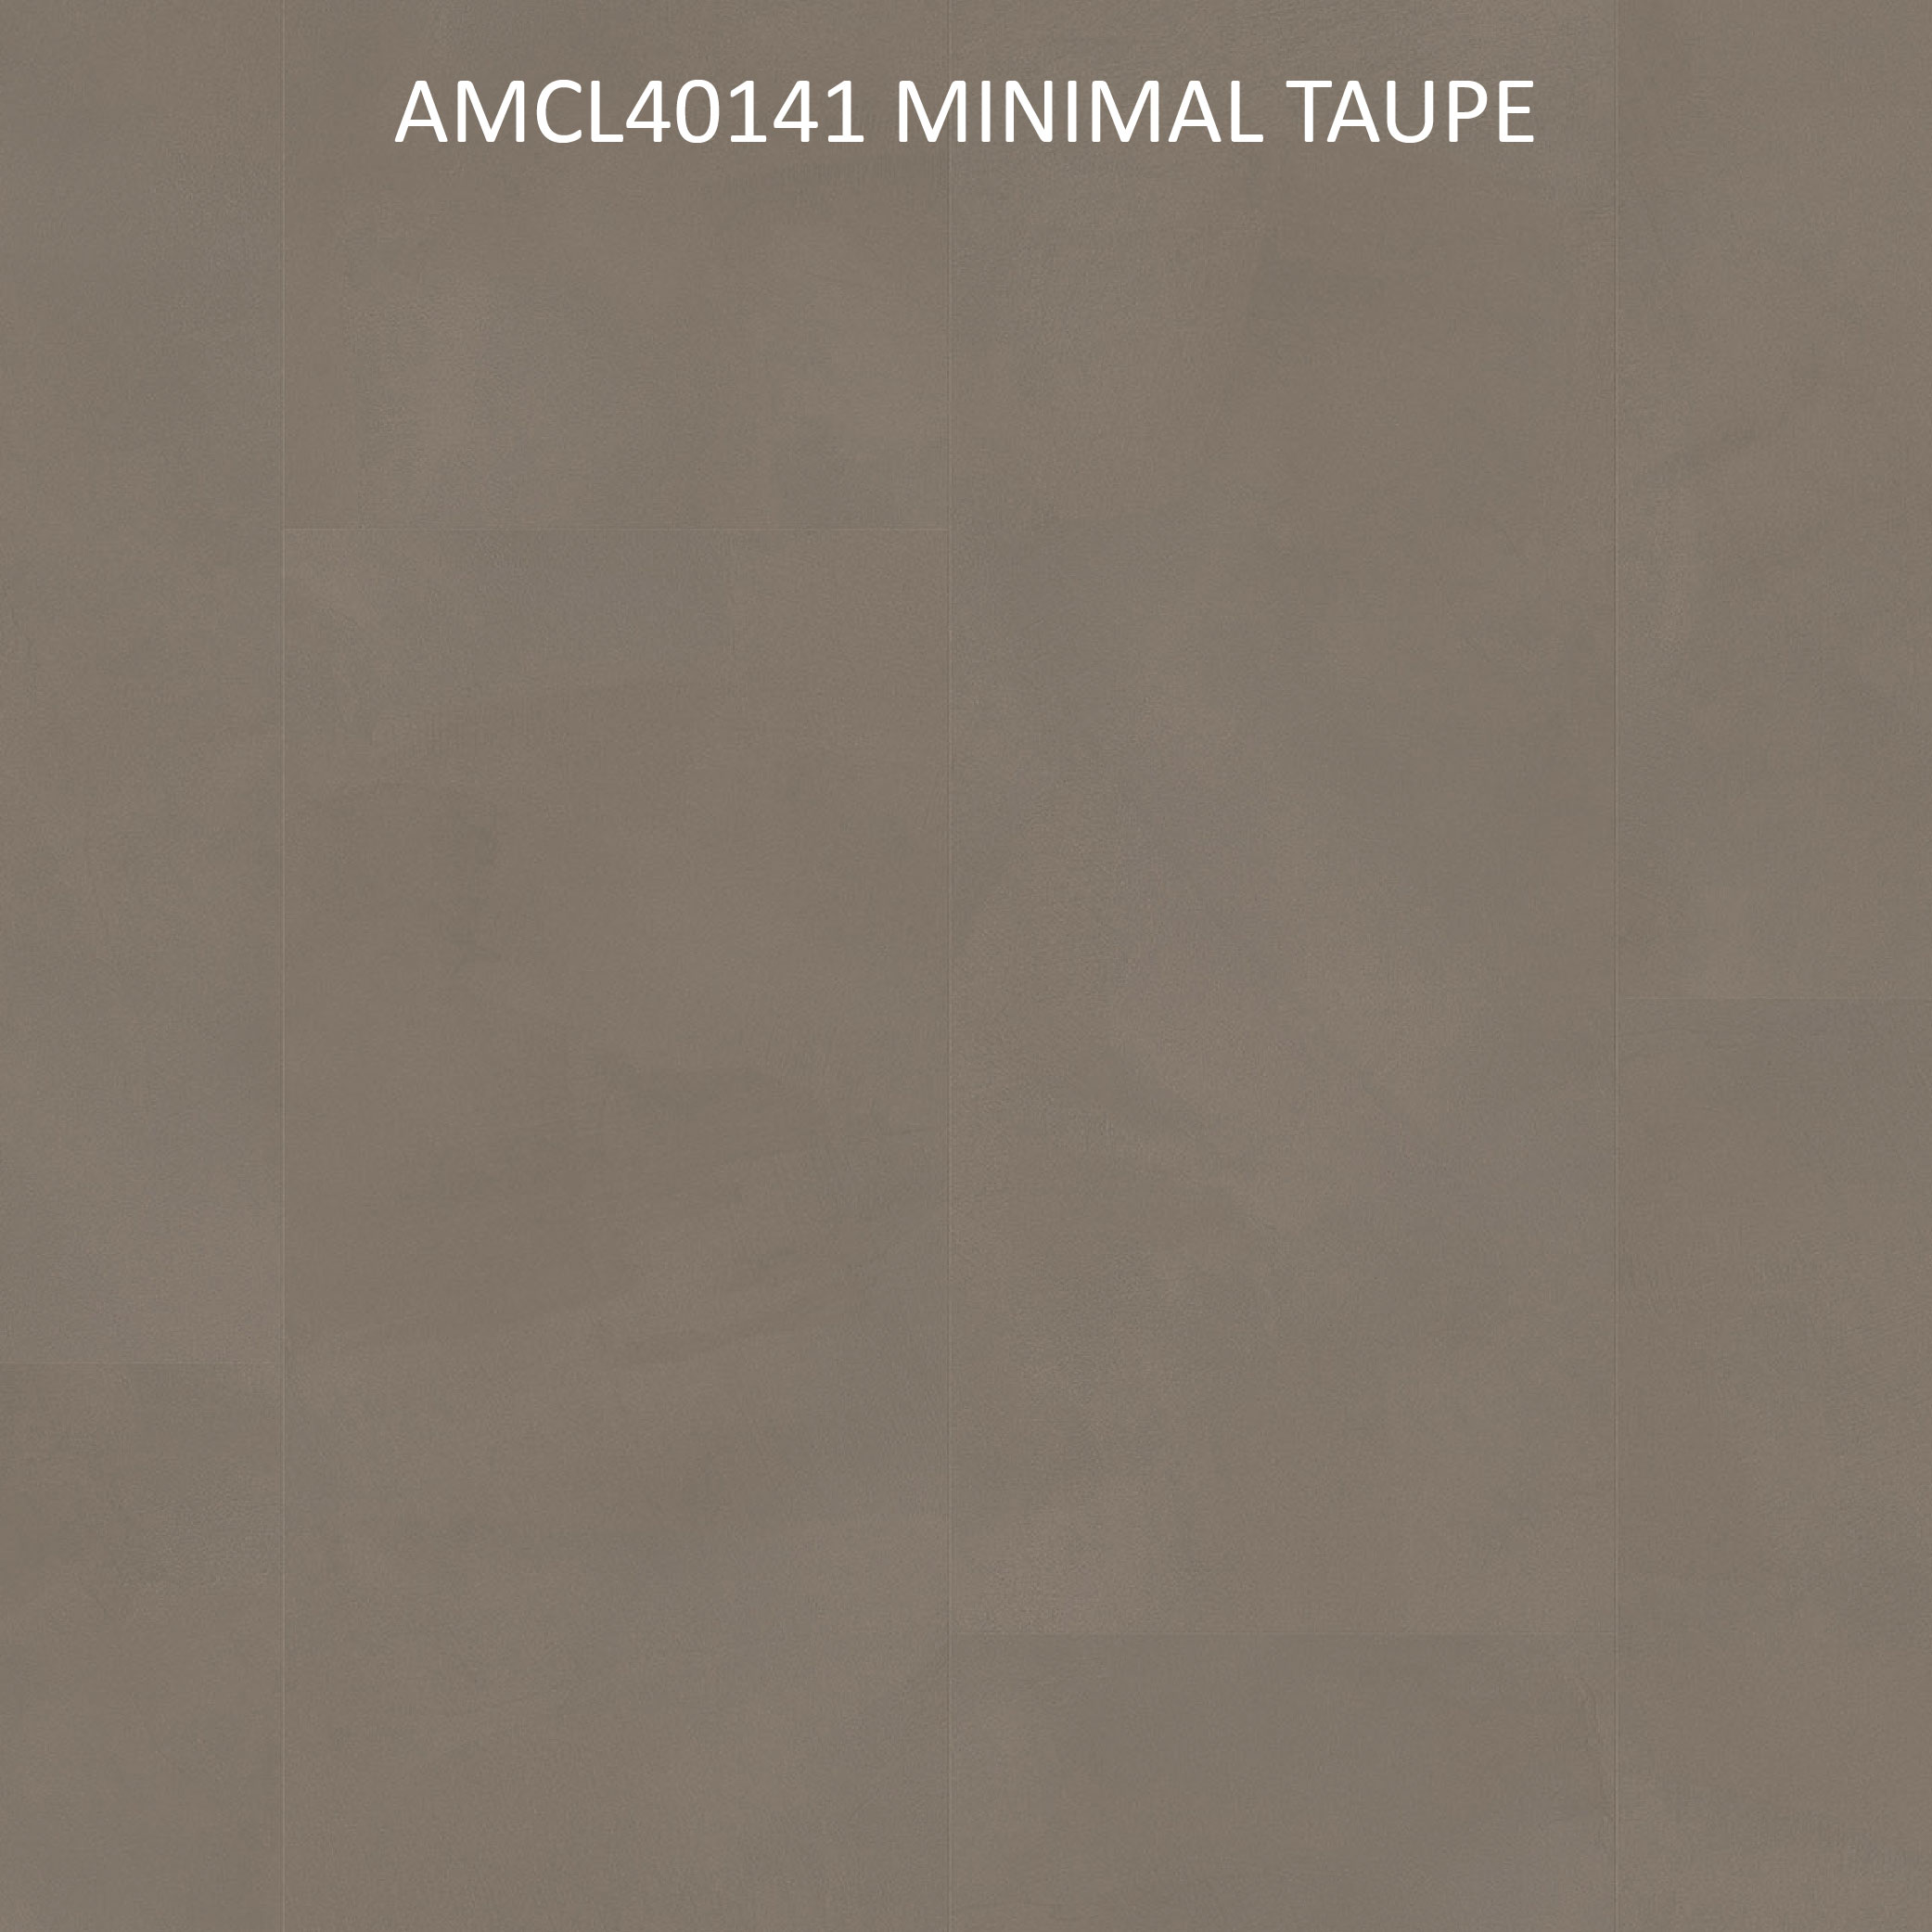 AMCL40141 MINIMAL TAUPE